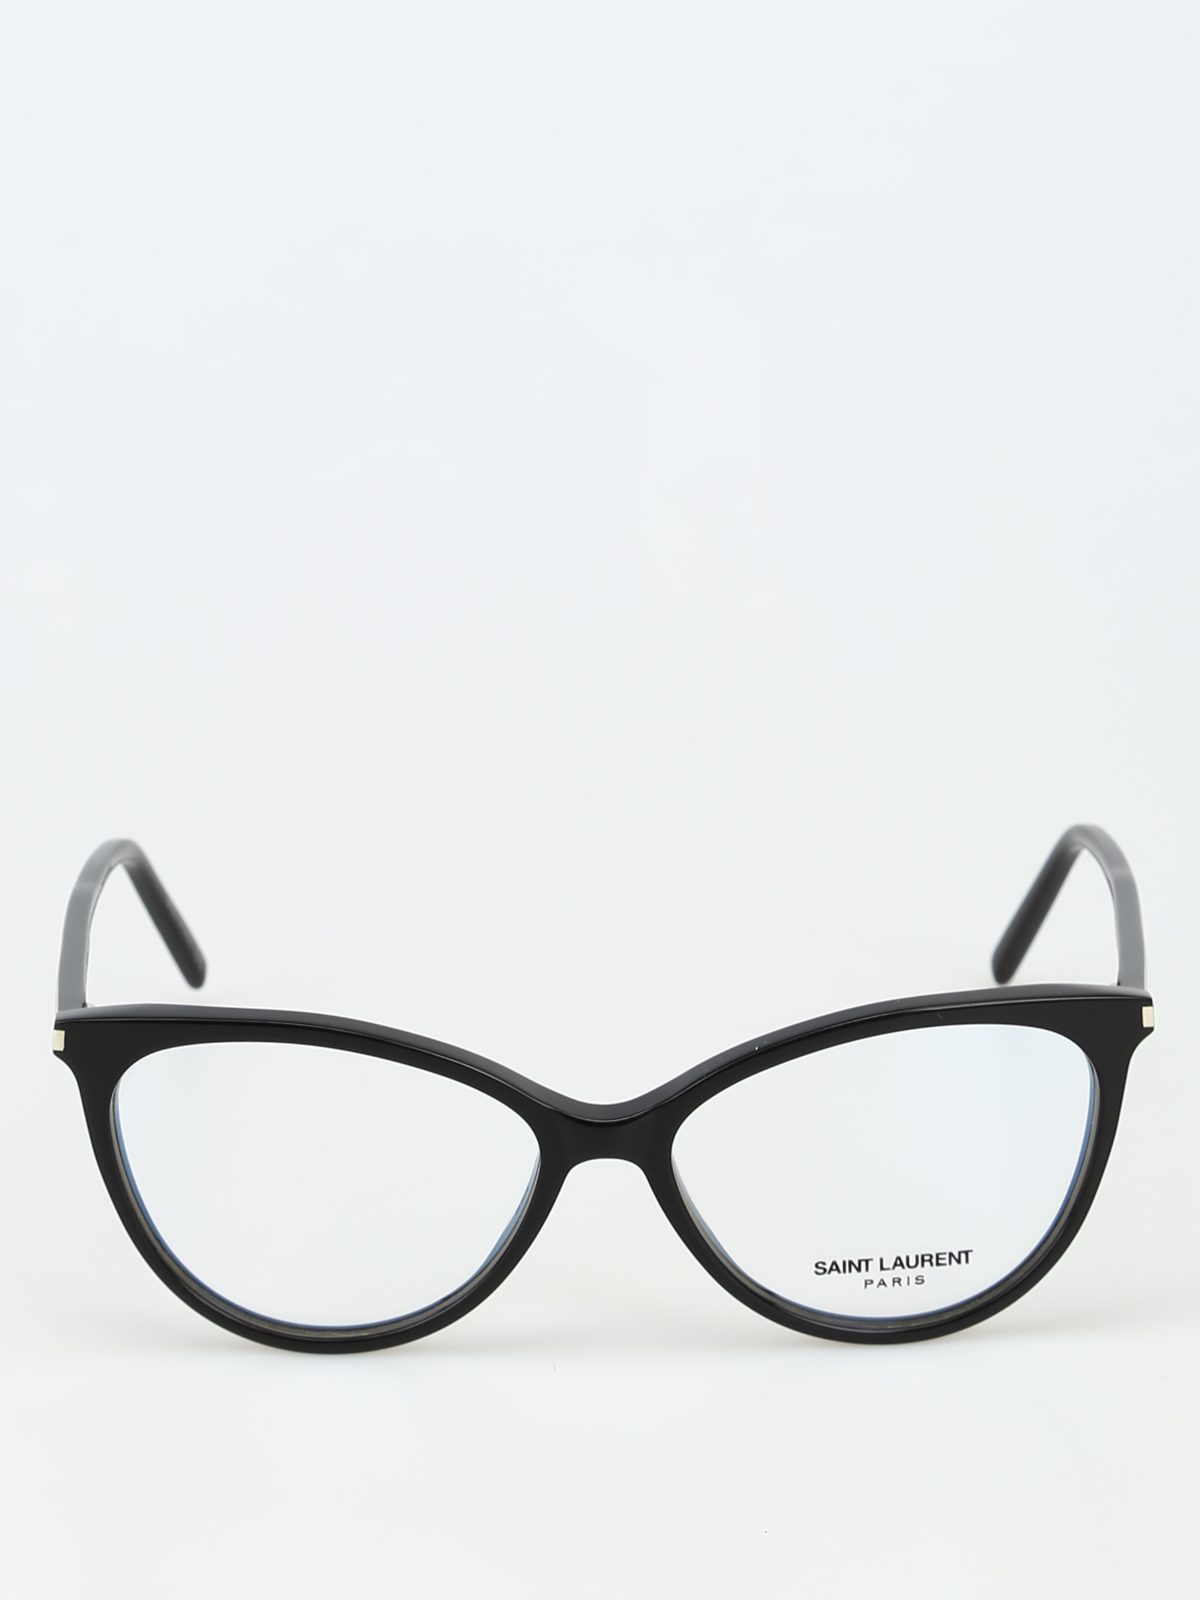 88e7a99303b Saint Laurent - Black cat eye eyeglasses - glasses - SL261001 ...